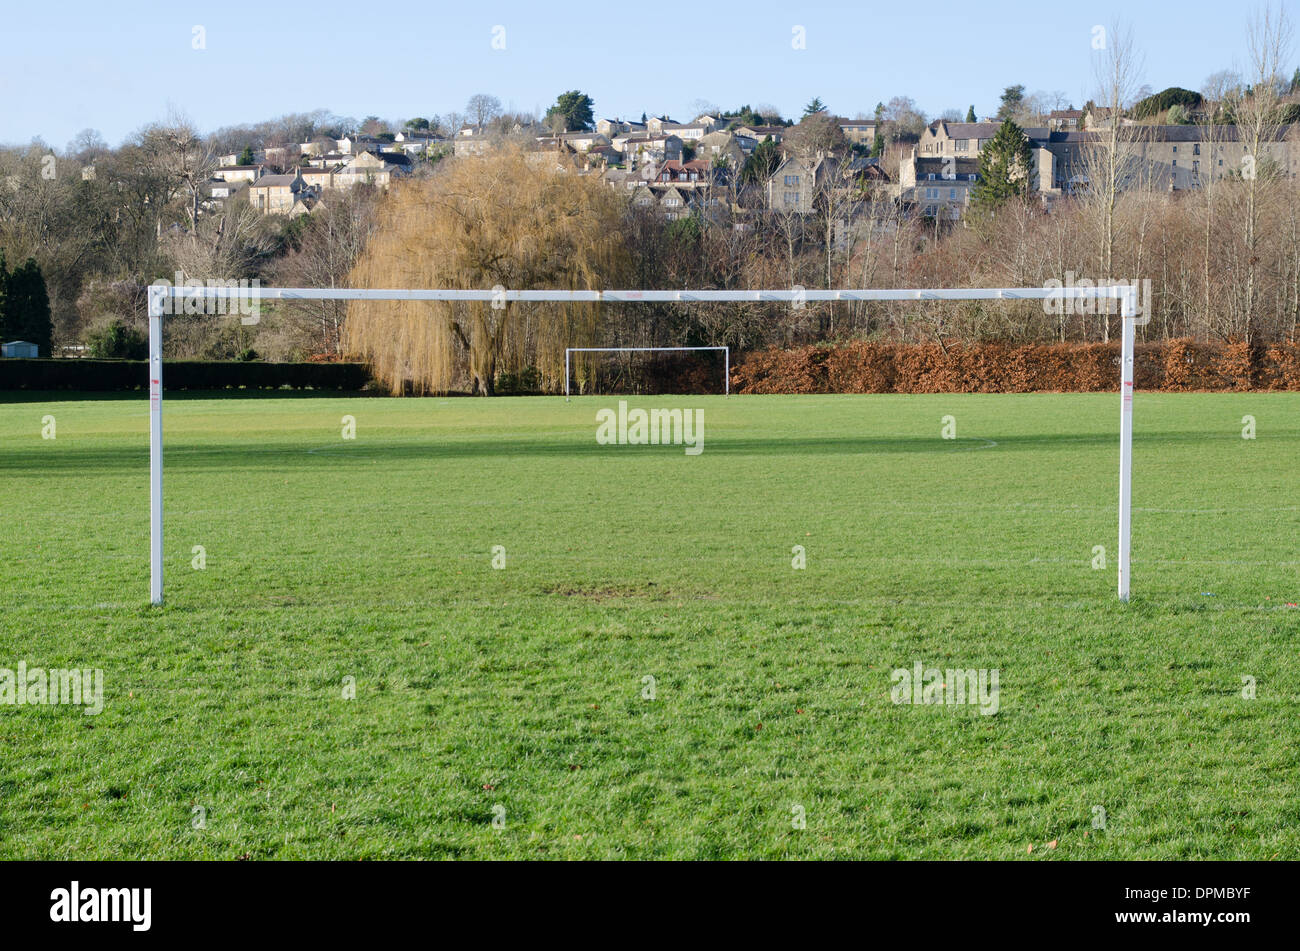 A British park football pitch goal posts - Stock Image